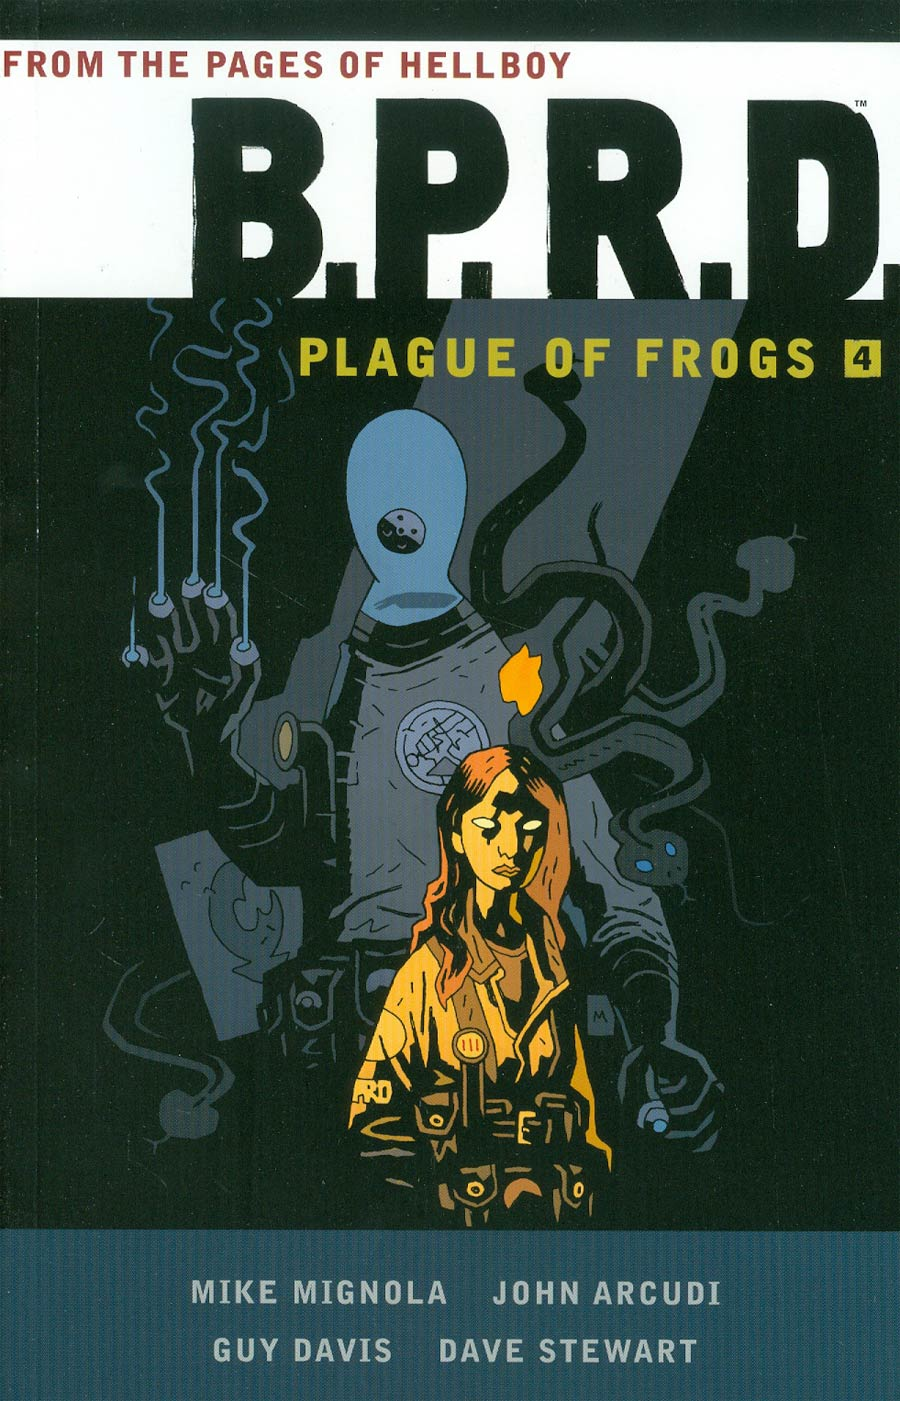 BPRD Plague Of Frogs Vol 4 TP